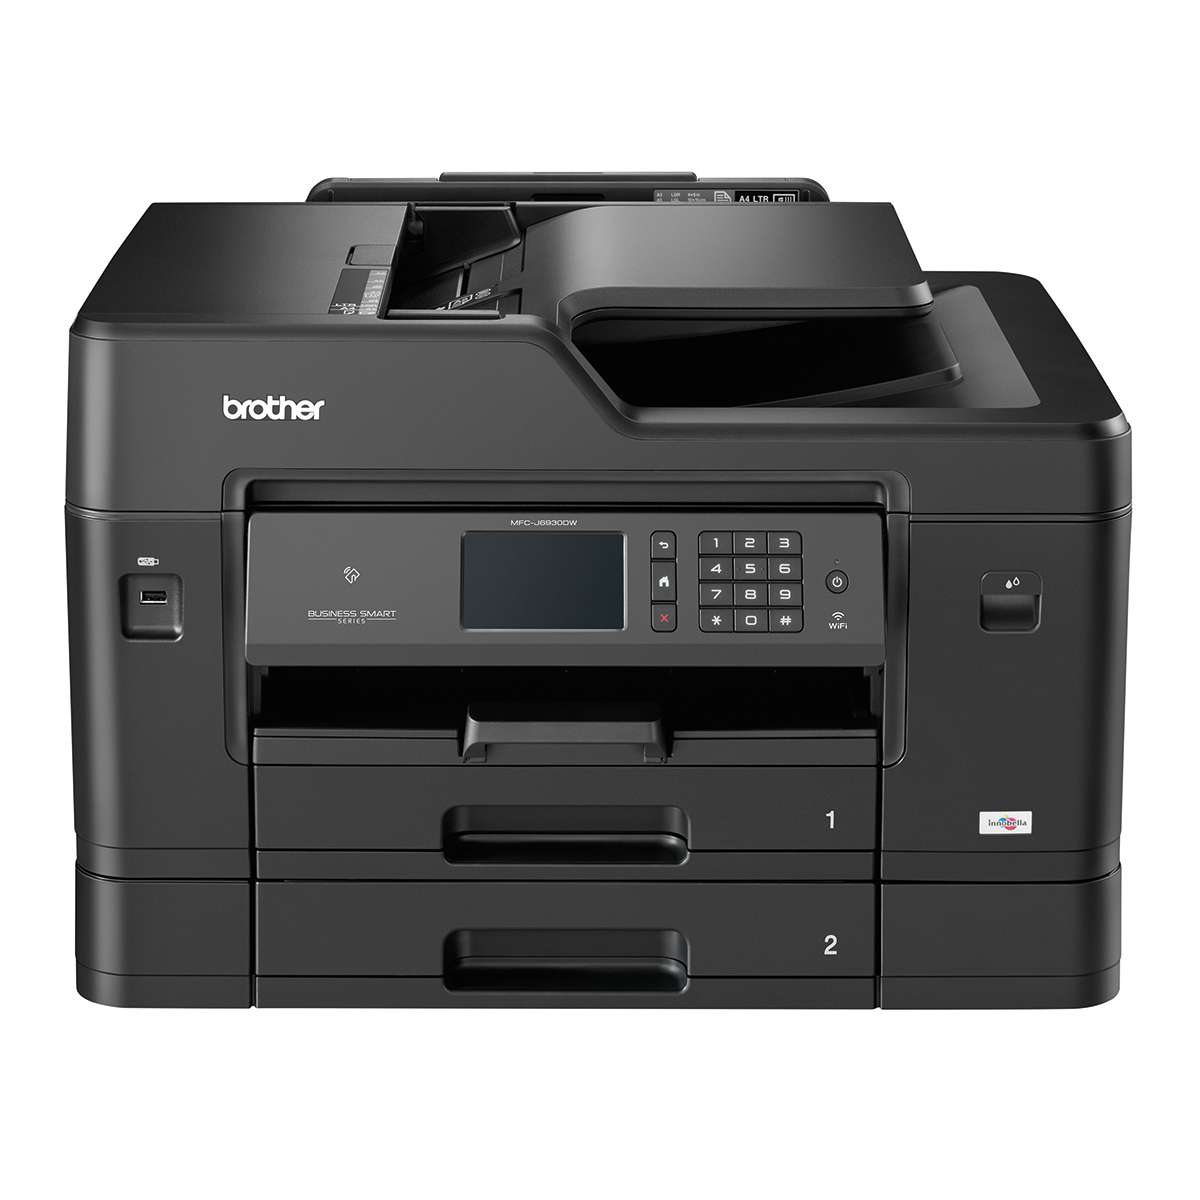 Brother MFC-J6930DW A Grade - Refurbished Machine